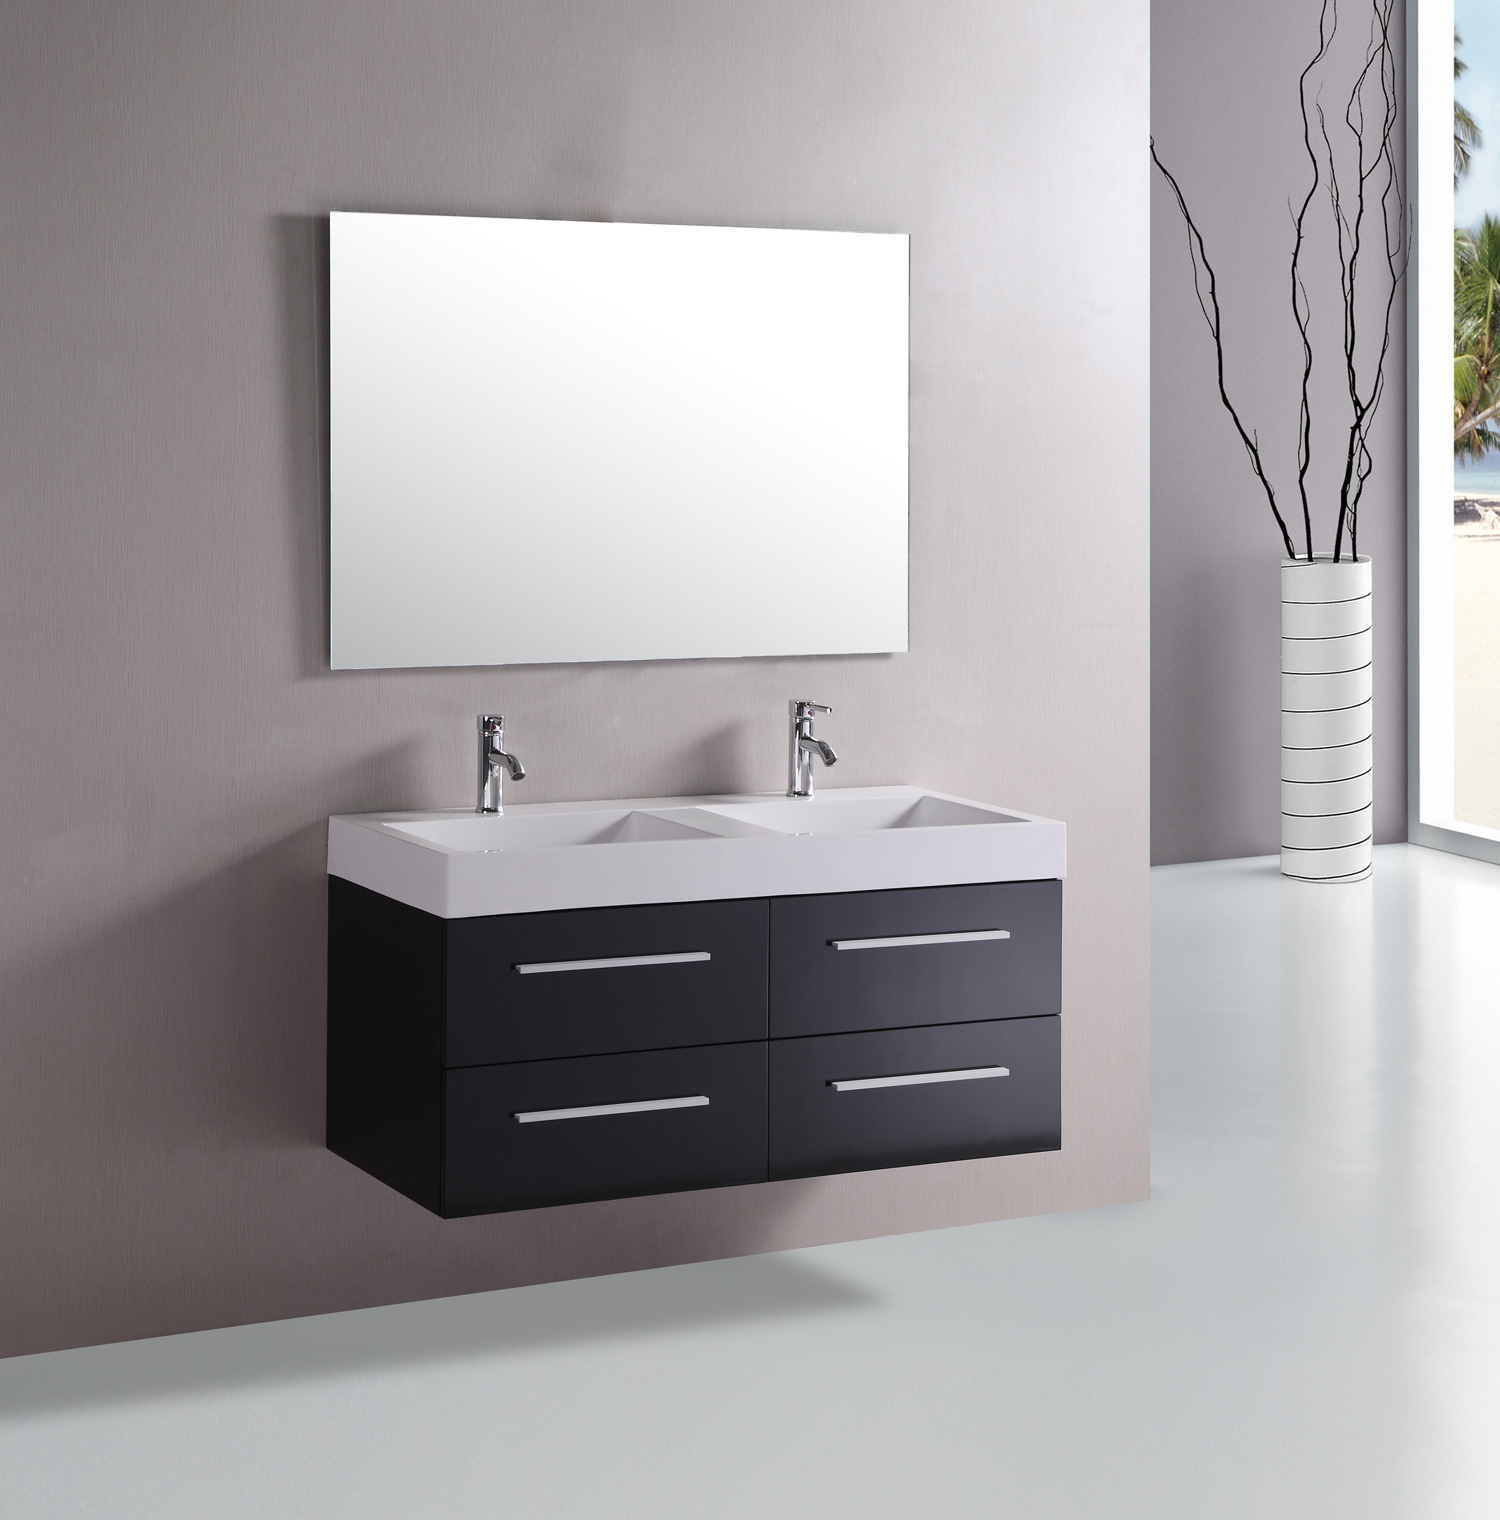 Picture of: 36 Inch Bathroom Vanity Floating